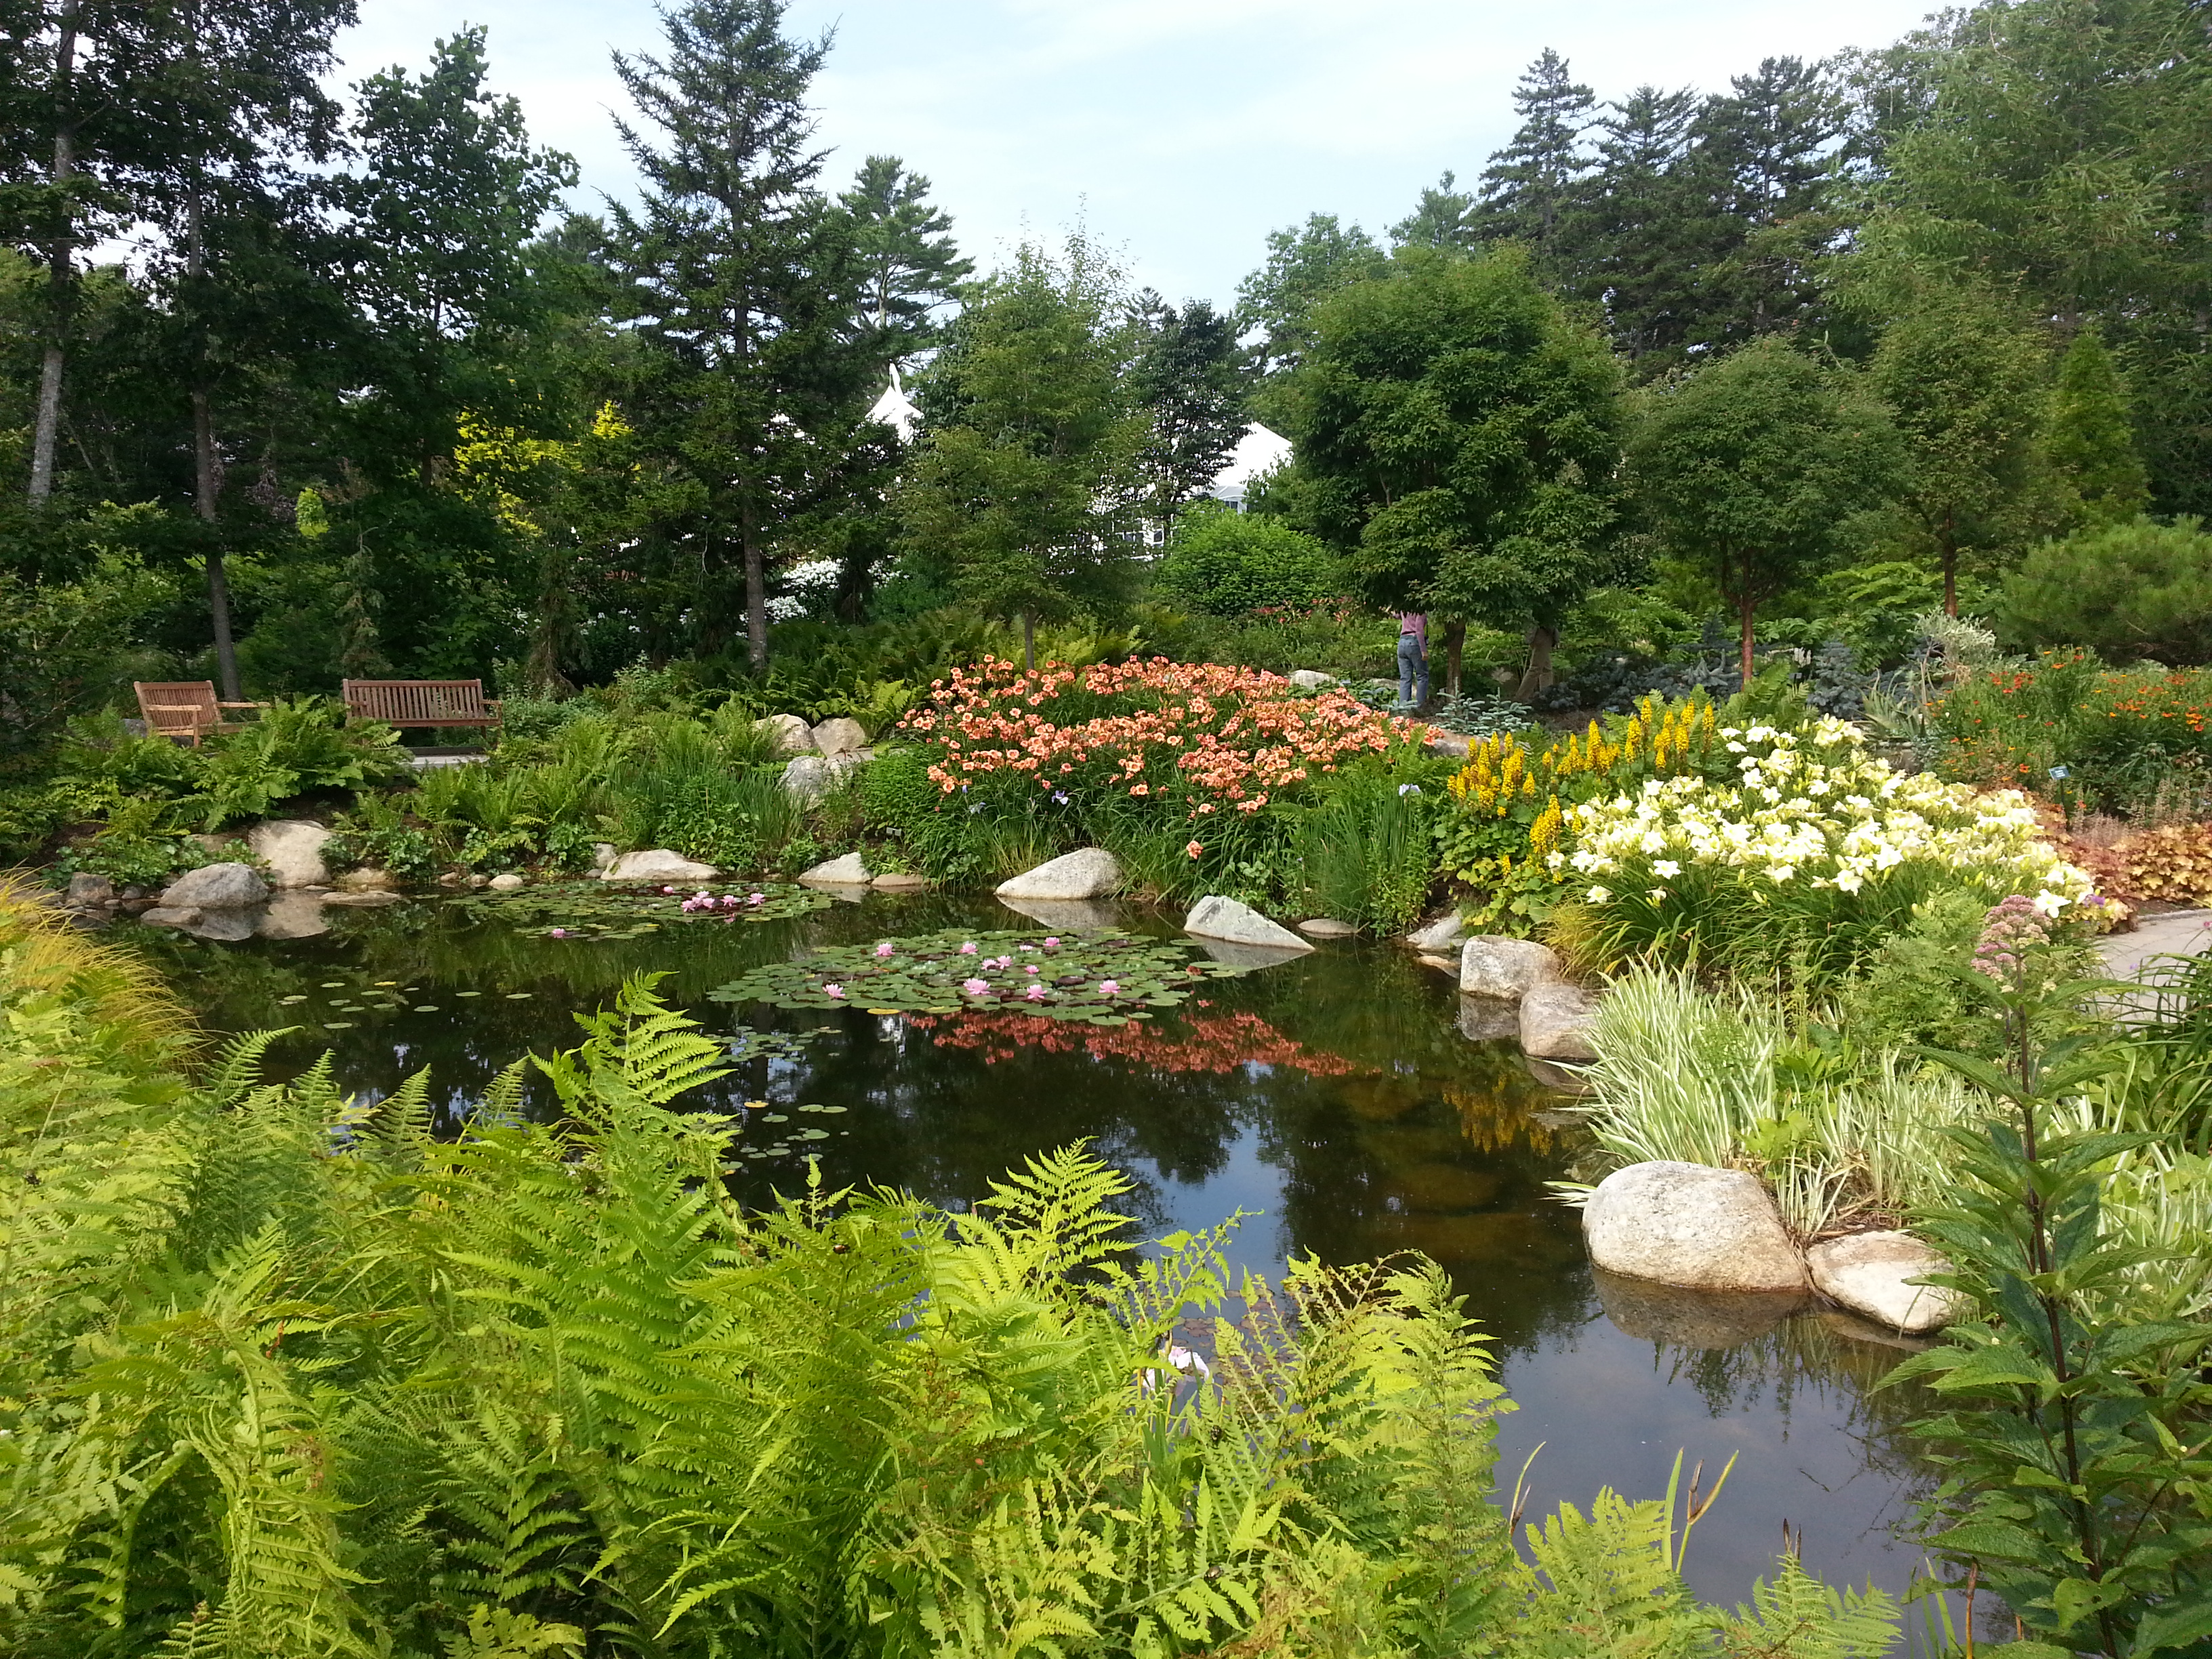 301 moved permanently - Botanical gardens boothbay harbor maine ...